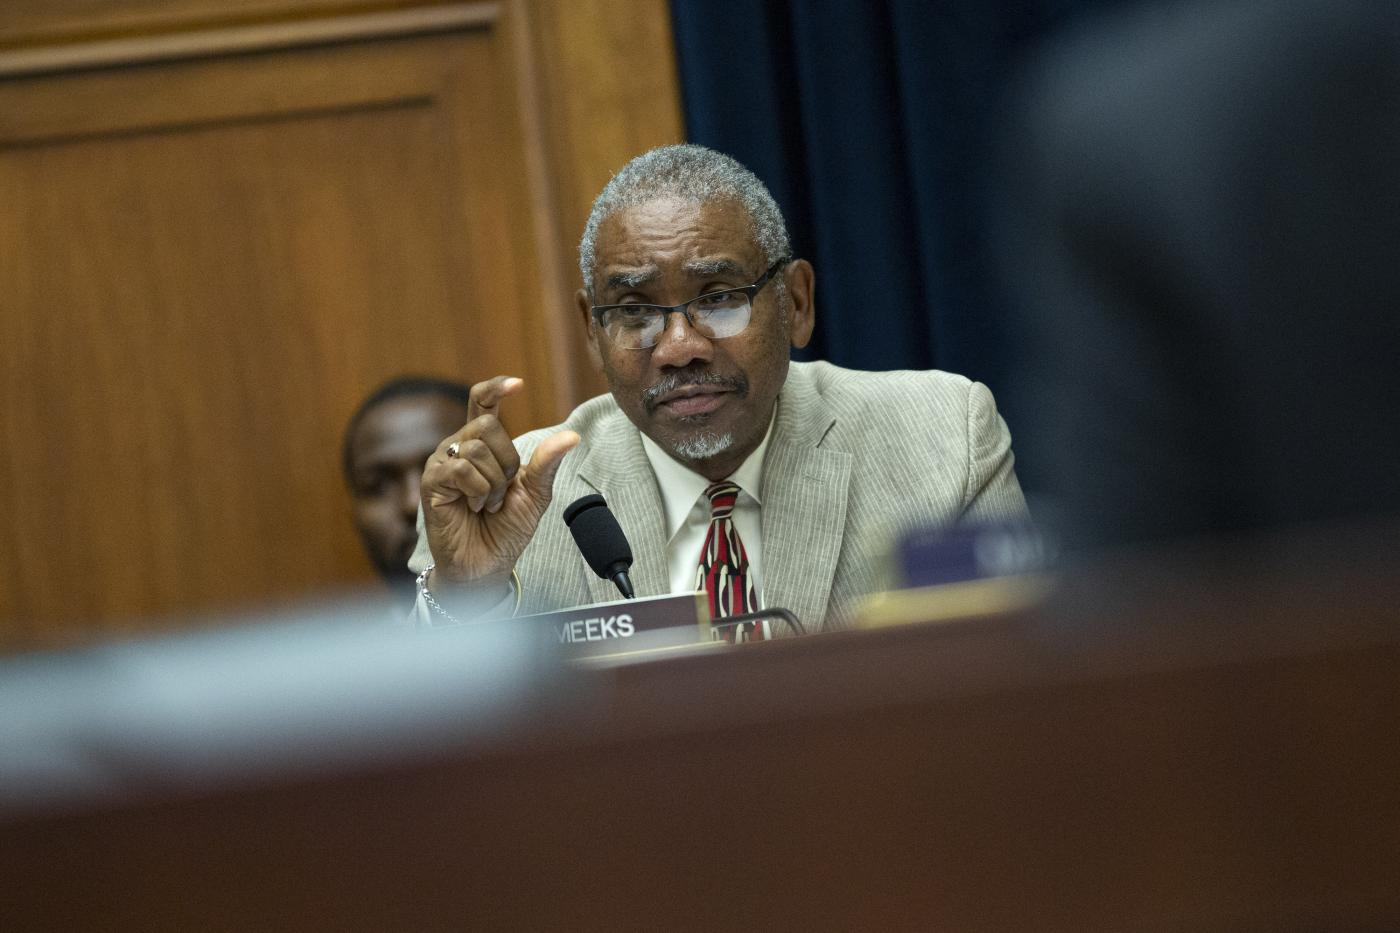 Gregory Meeks is the first Black American to lead the House Foreign Affairs Committee